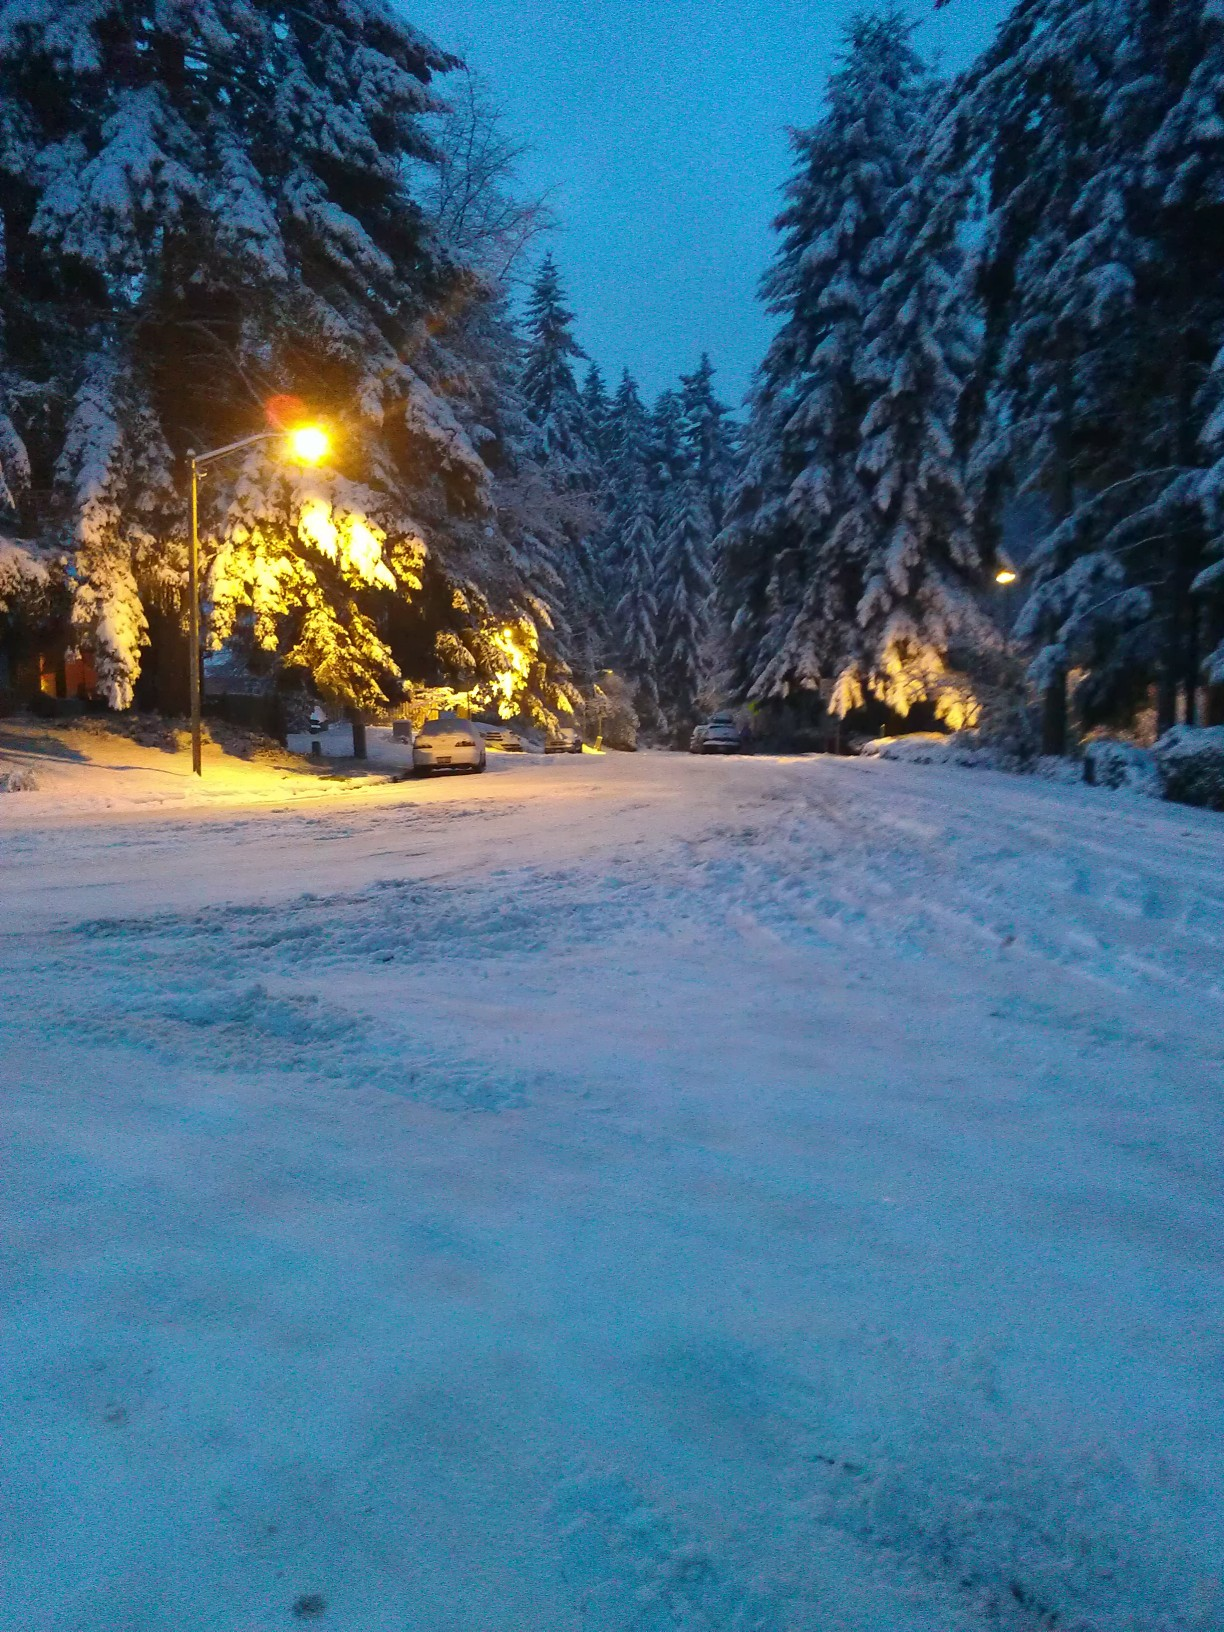 A winter scene from near my home. Heavy snow blankets the ground and the towering evergreen trees, while a lone streetlamp casts a warm, golden glow over part of the scene.